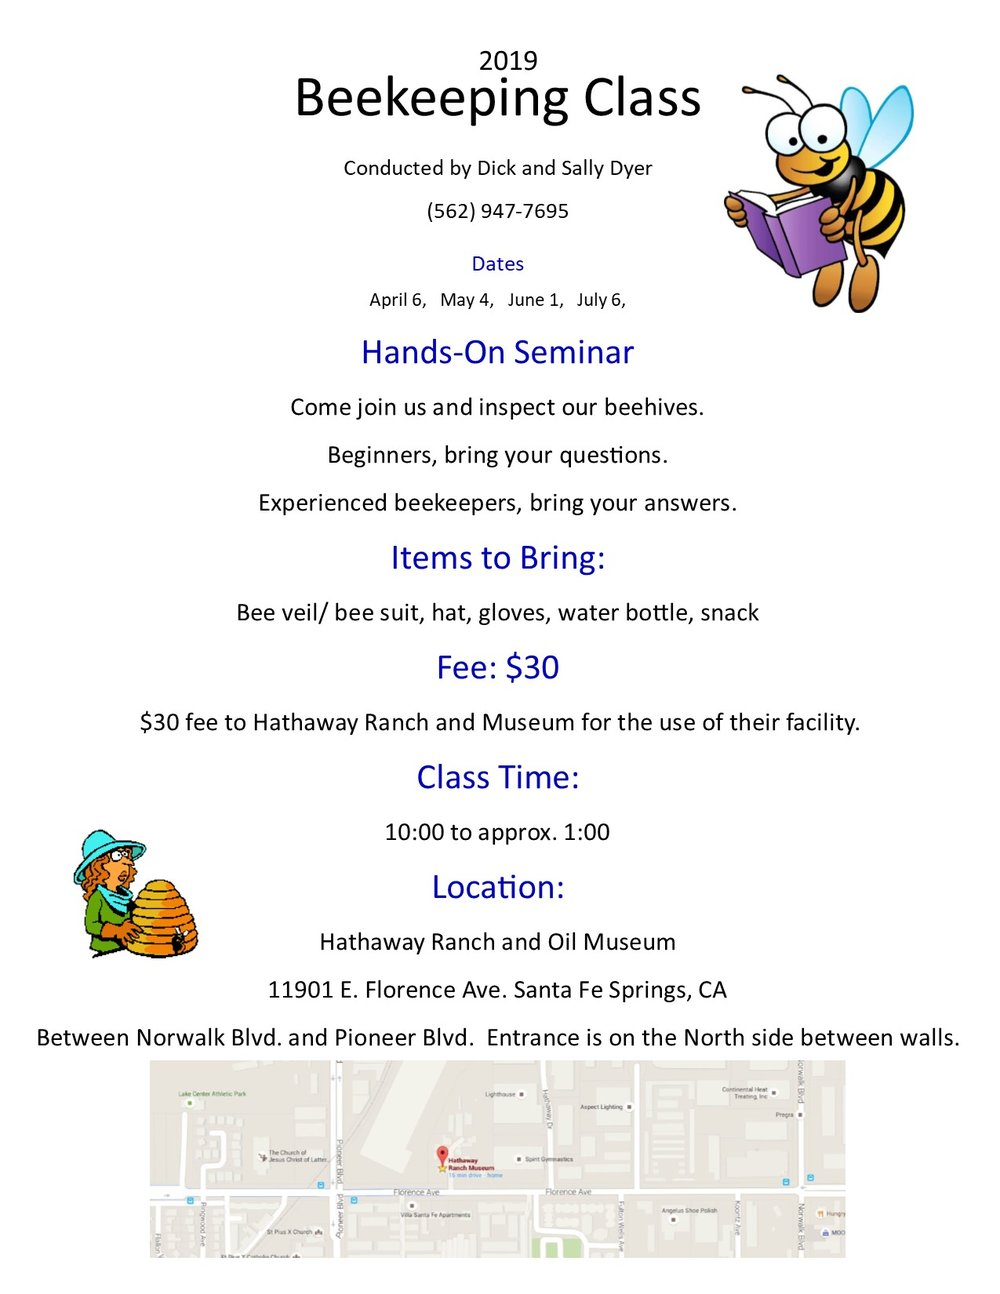 Beekeeping Class and directions 2019.jpg